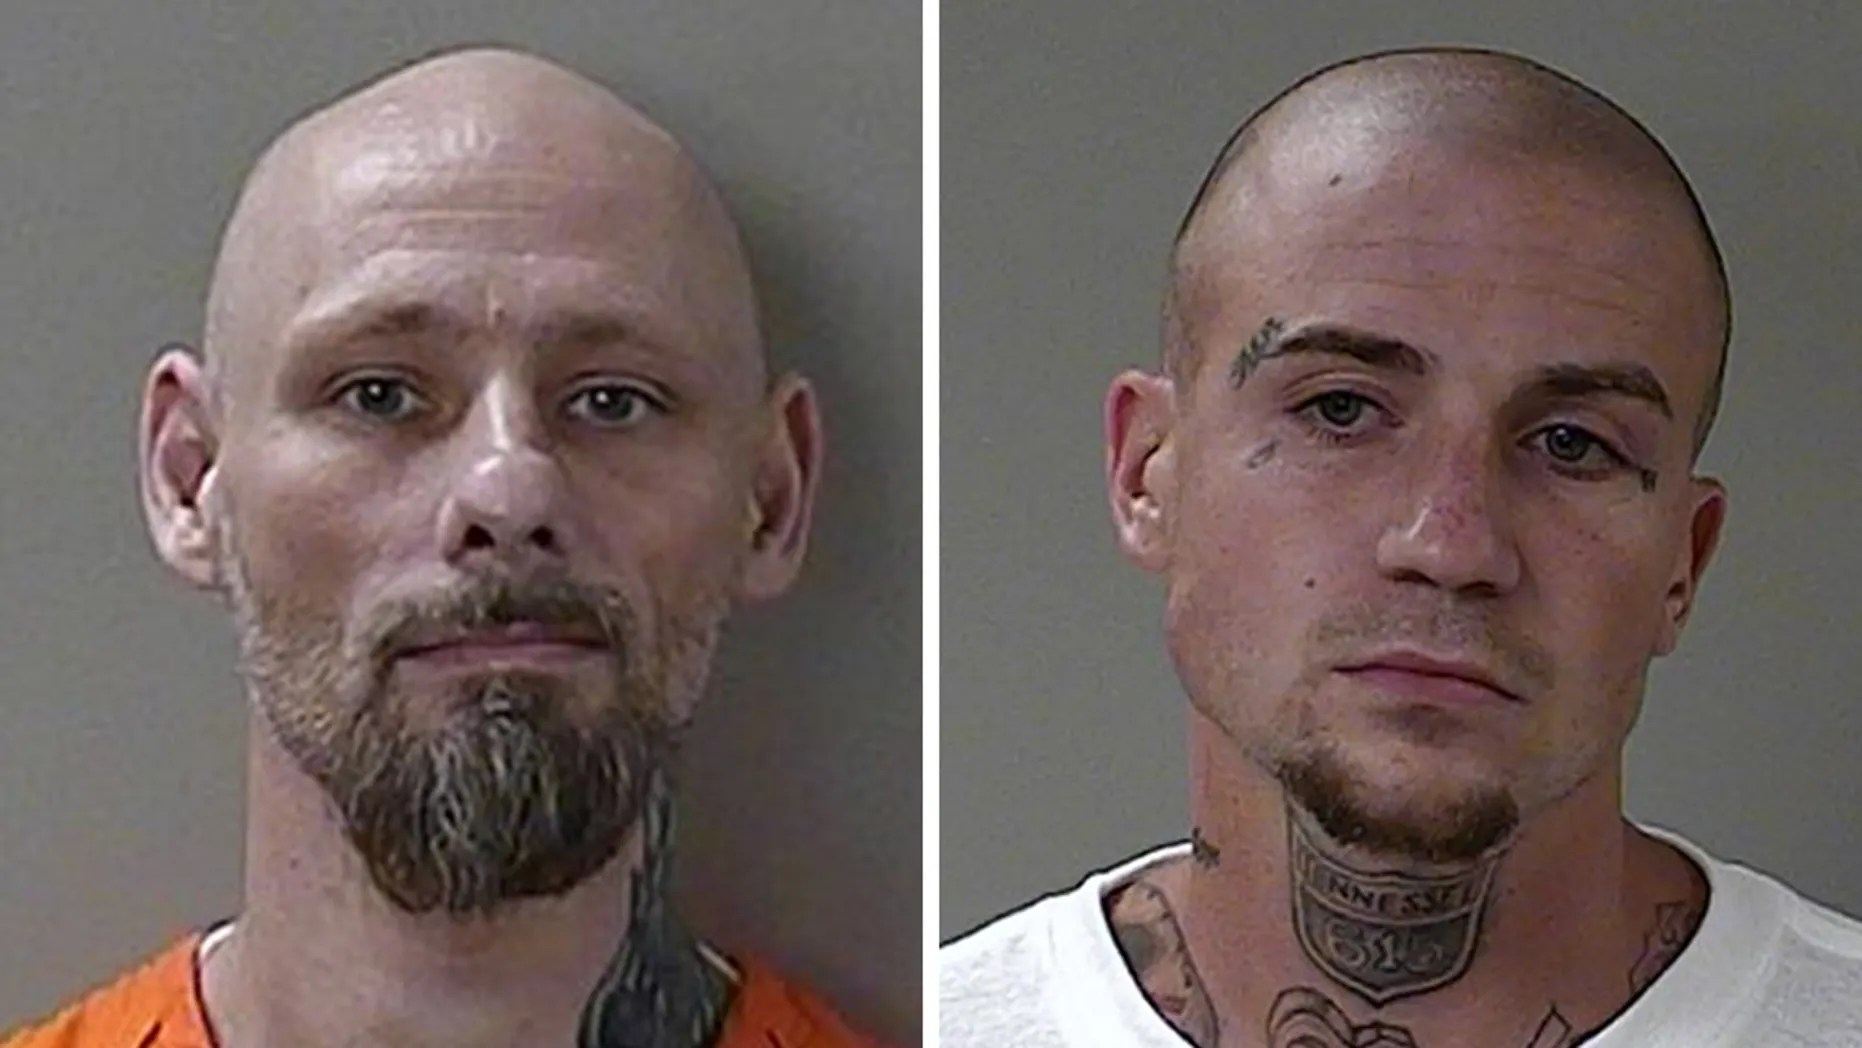 Two Tennessee inmates who escaped from custody earlier this week were captured on Thursday and are expected to be hit with new charges, authorities said.